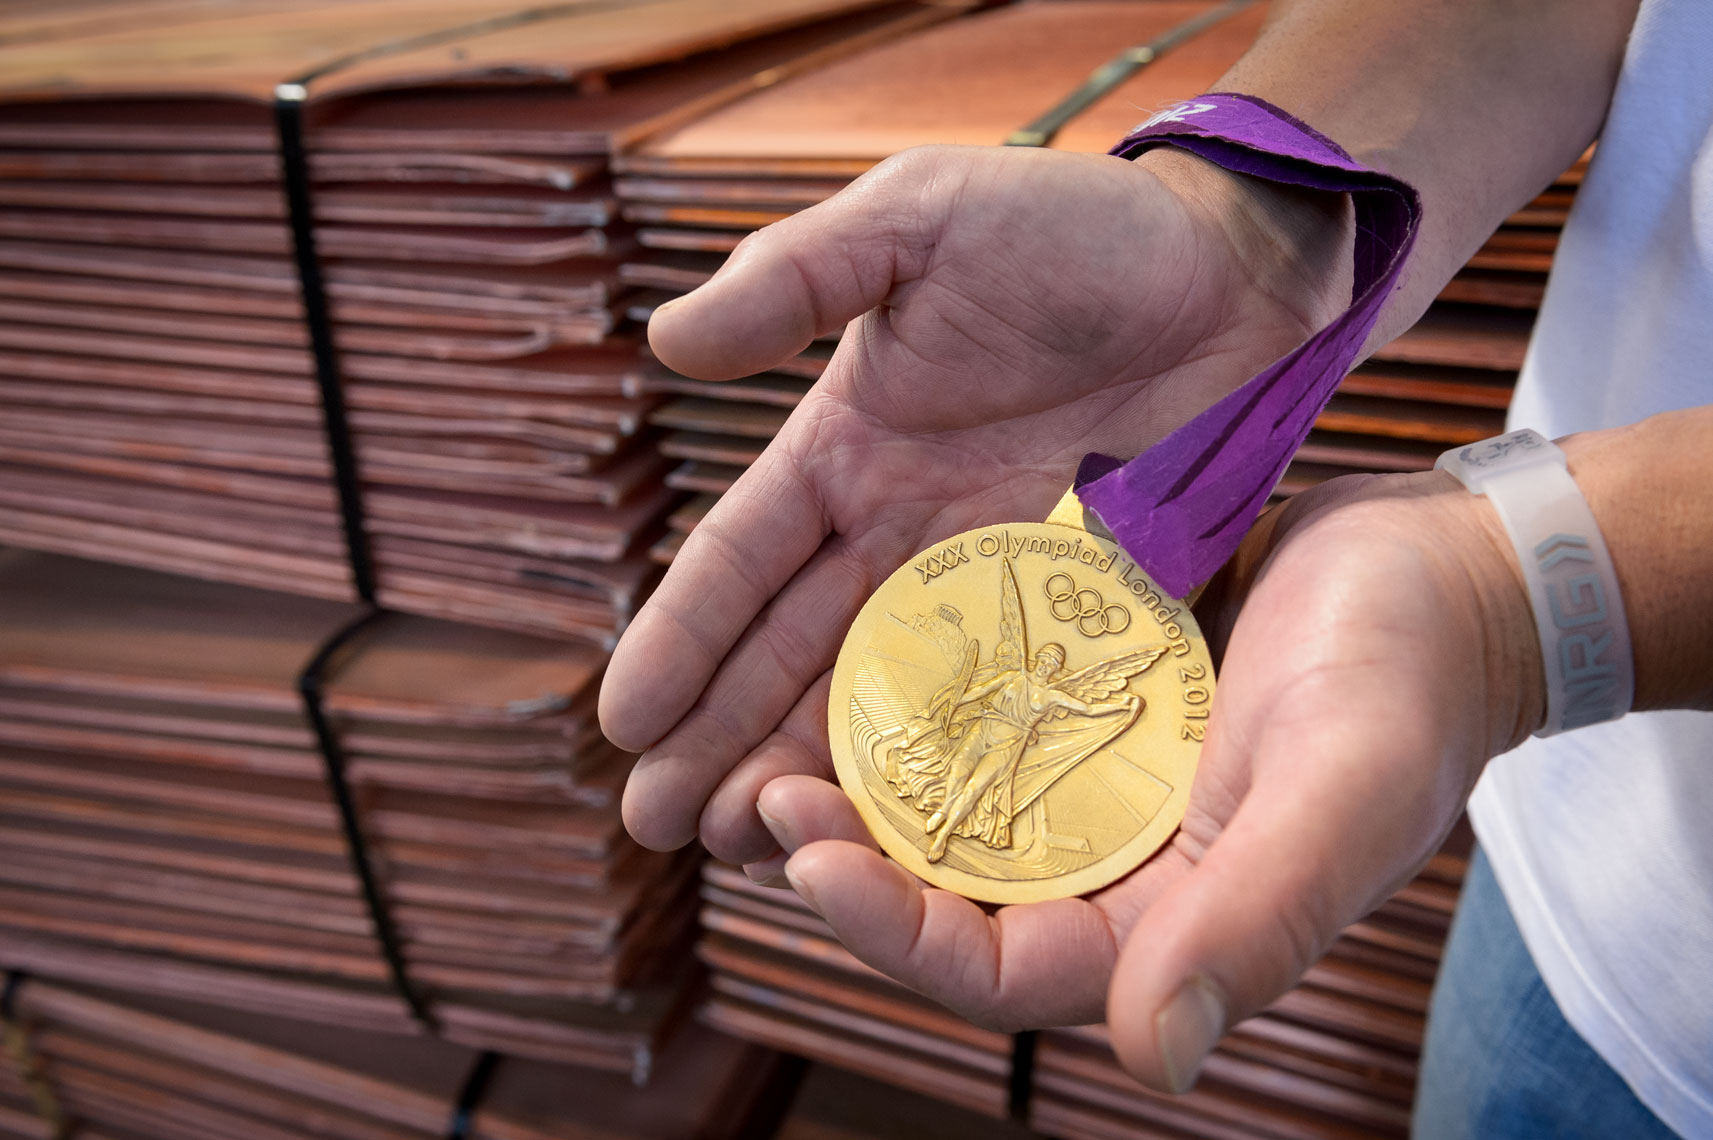 Rio Tinto Olympic Medals